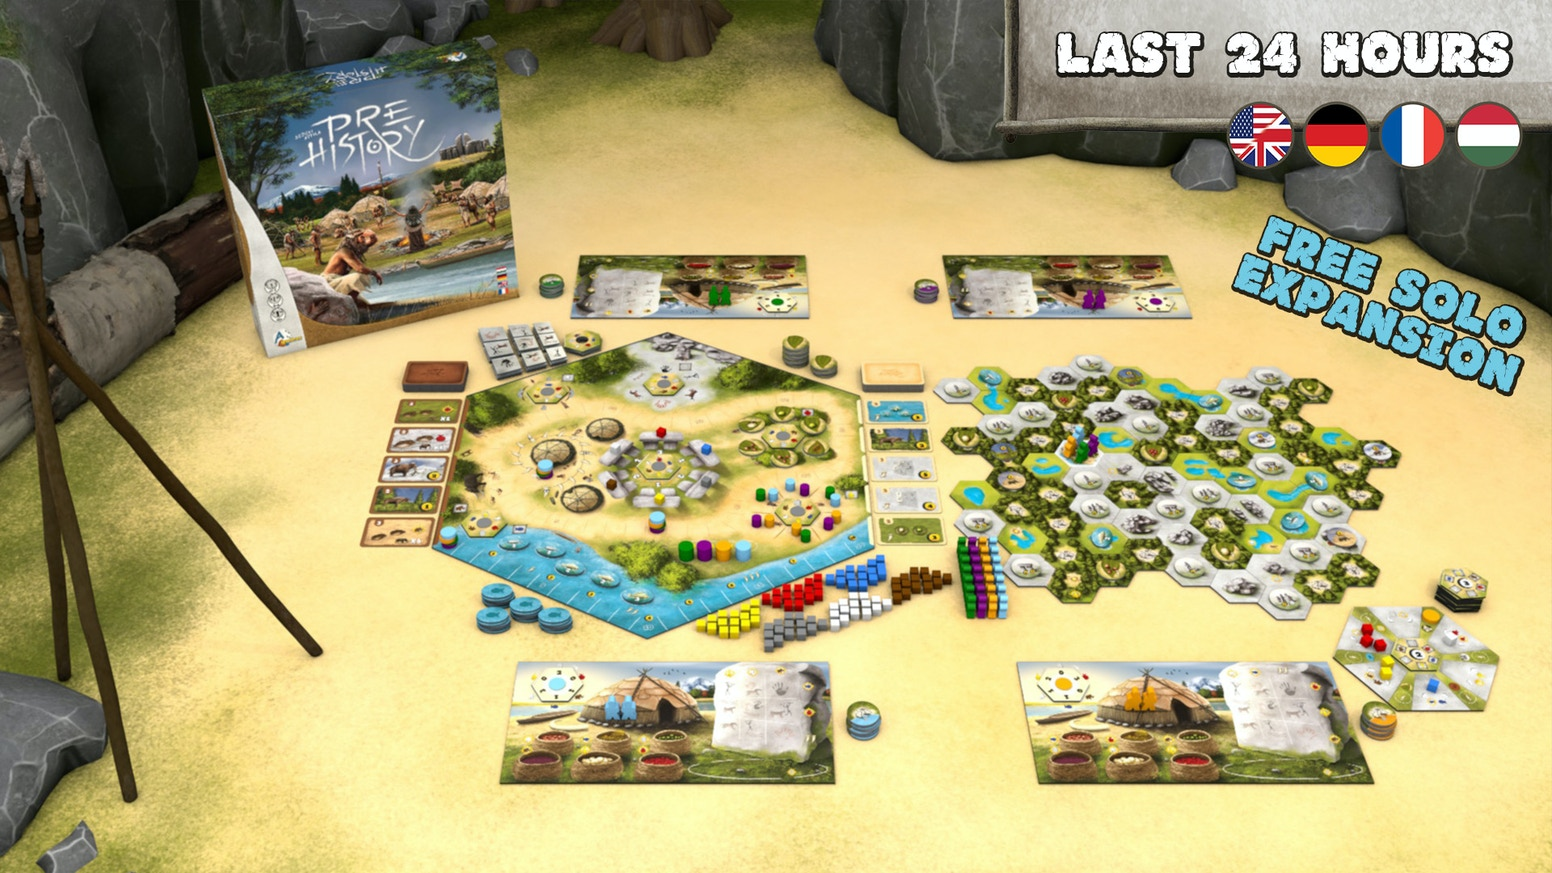 A prehistoric themed strategy board game with unique mechanisms for 1-4 players. With FREE solo mode expansion and extras.